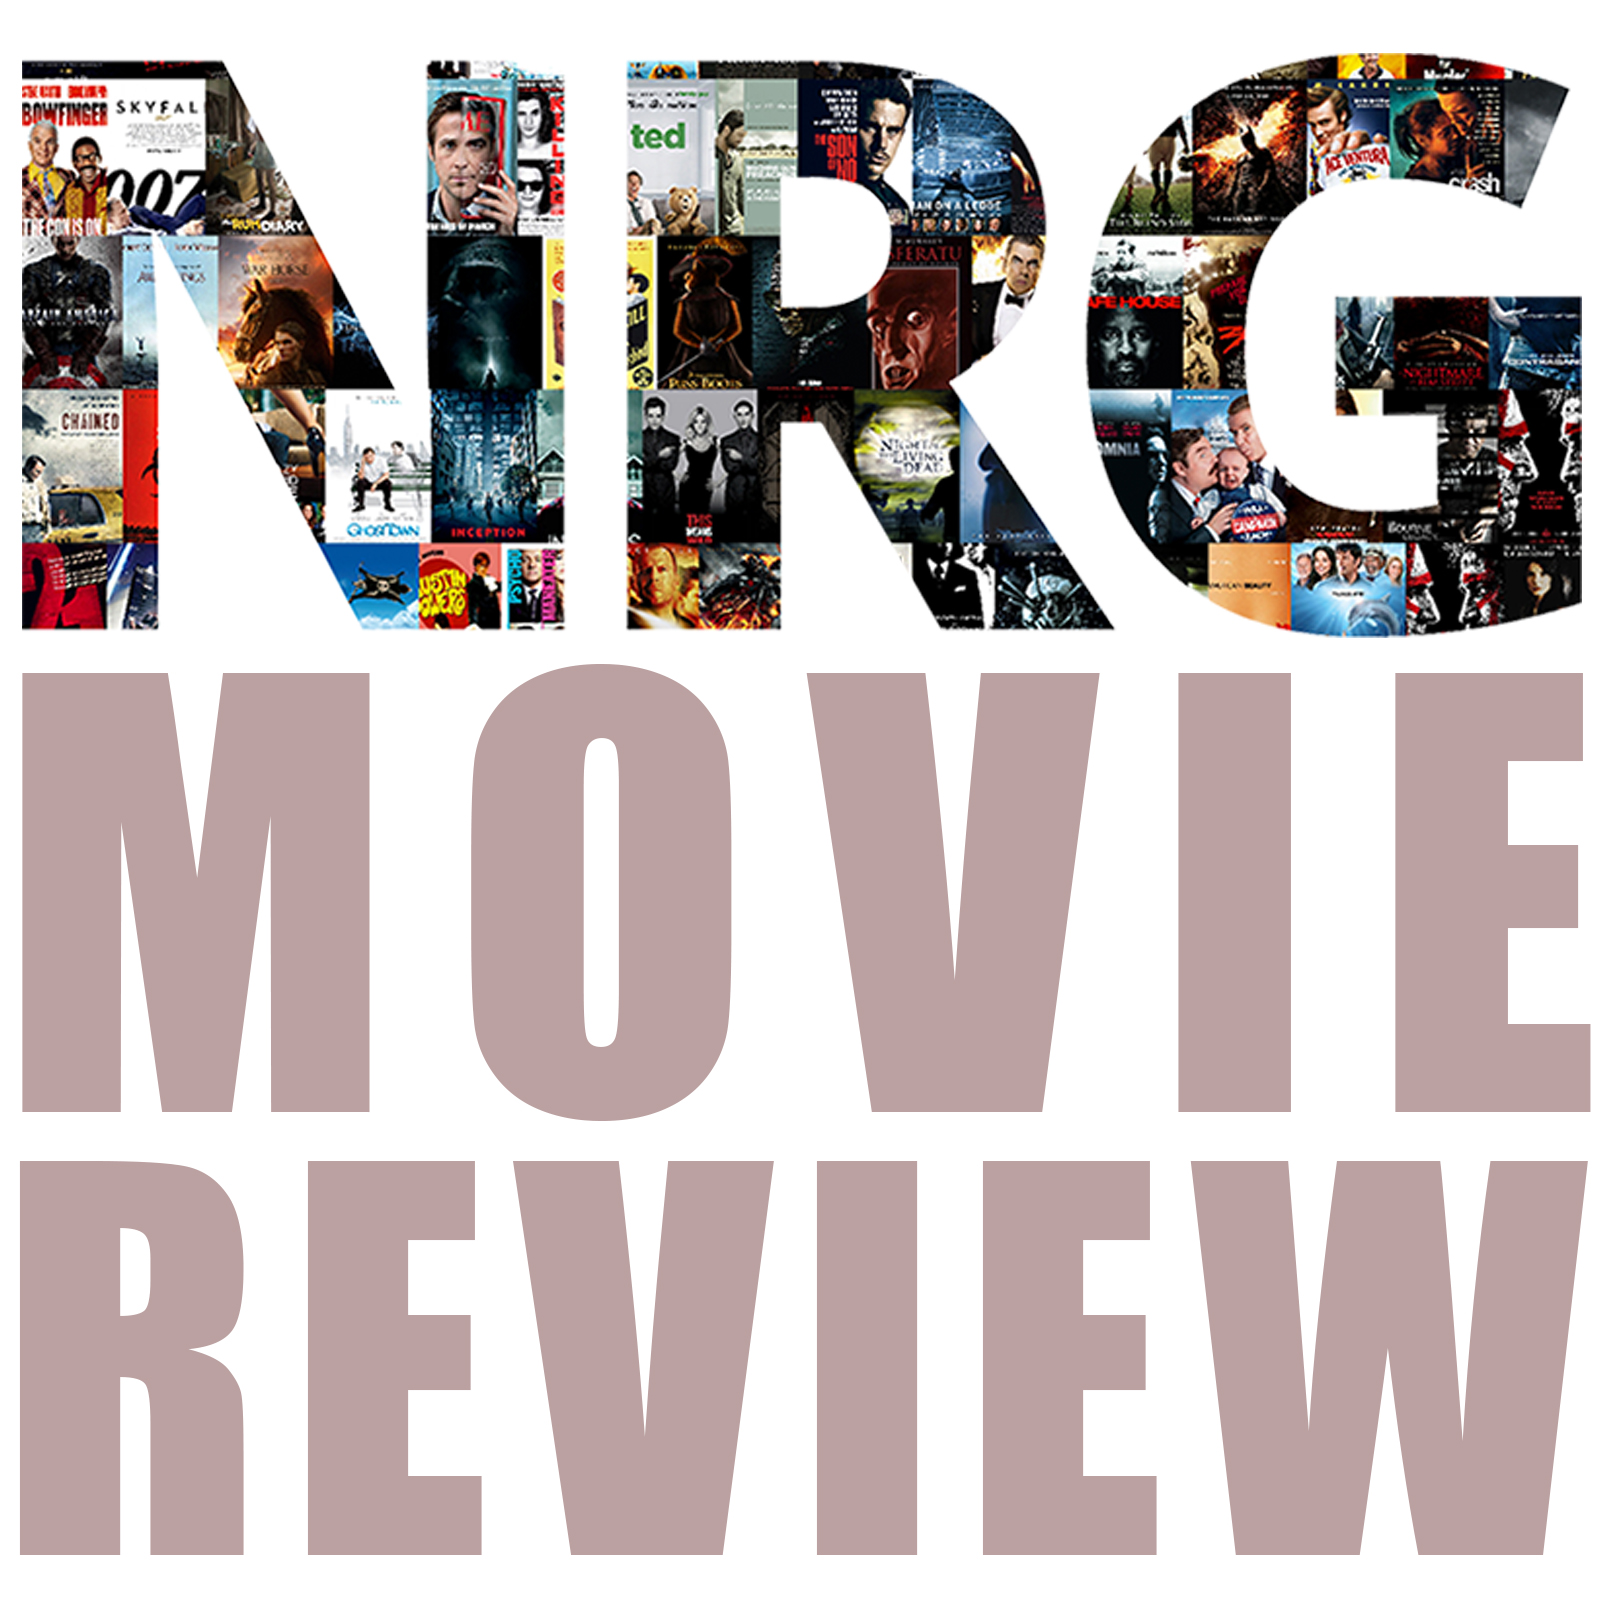 NRG movie review